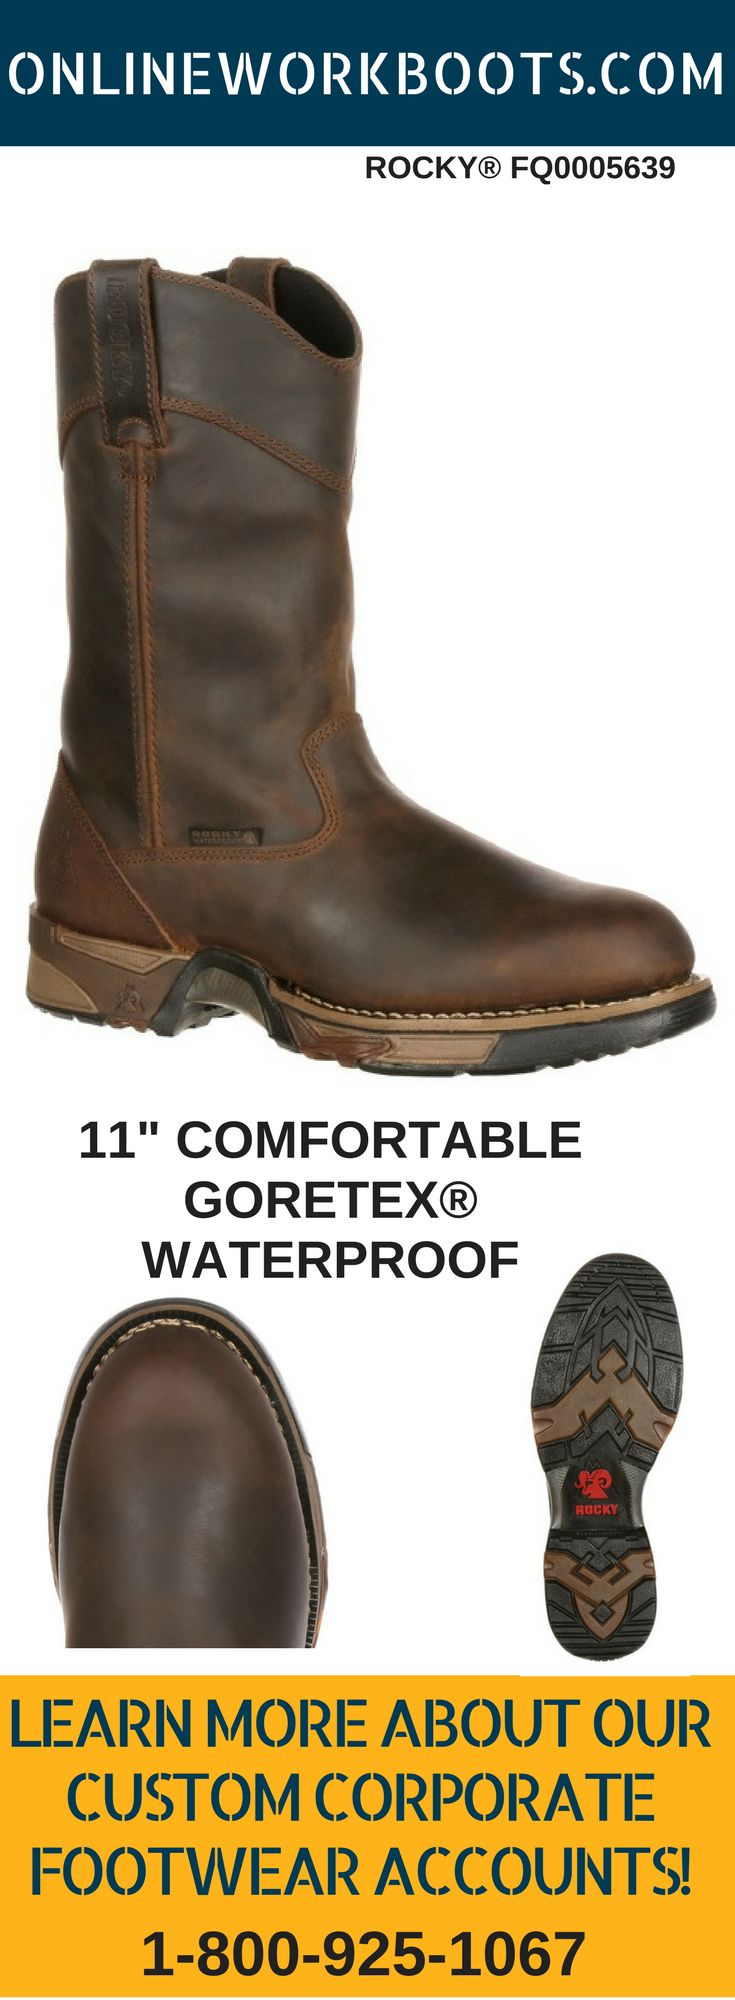 The Rocky® FQ0005639 from www.onlineworkboots.com At 11